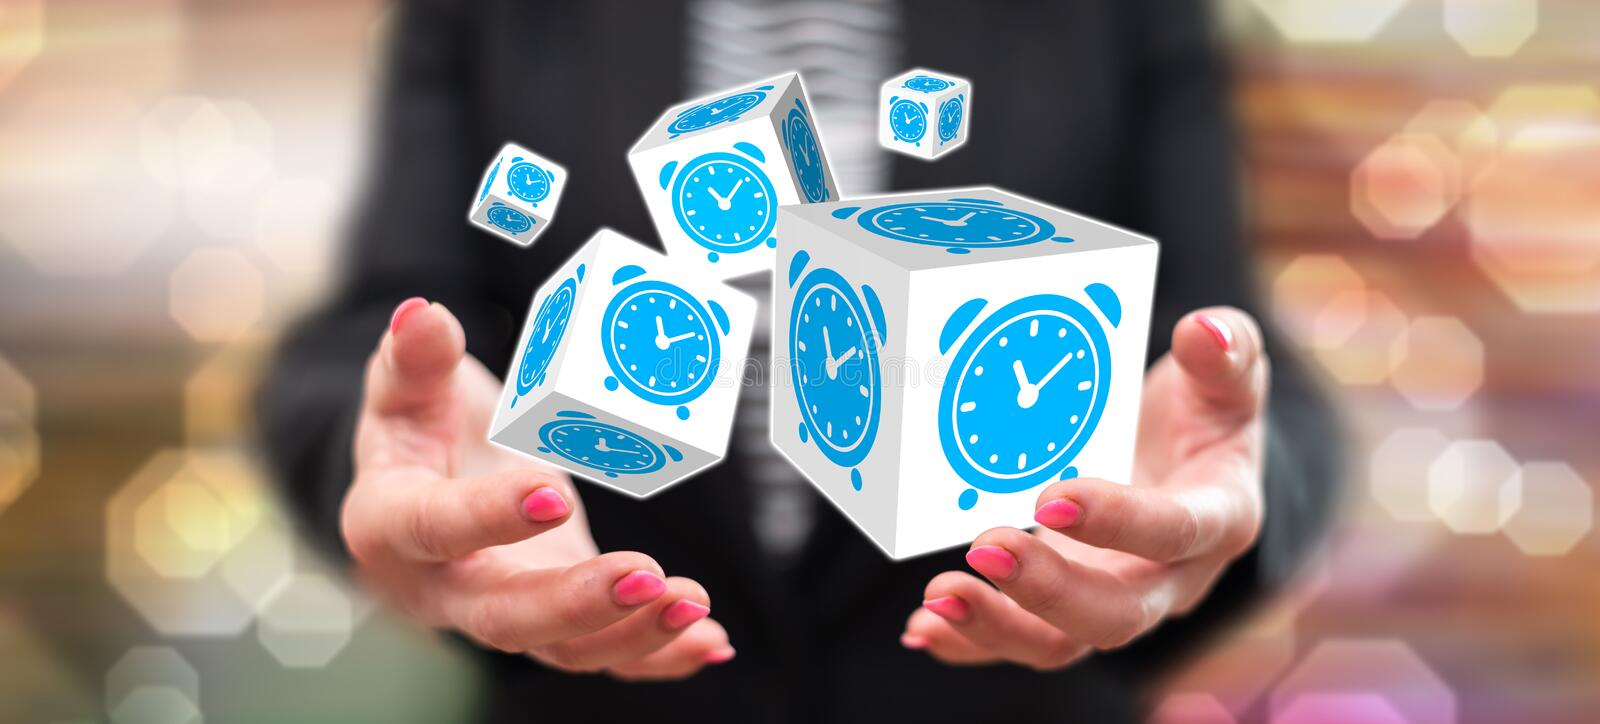 Concept of time management royalty free stock photography